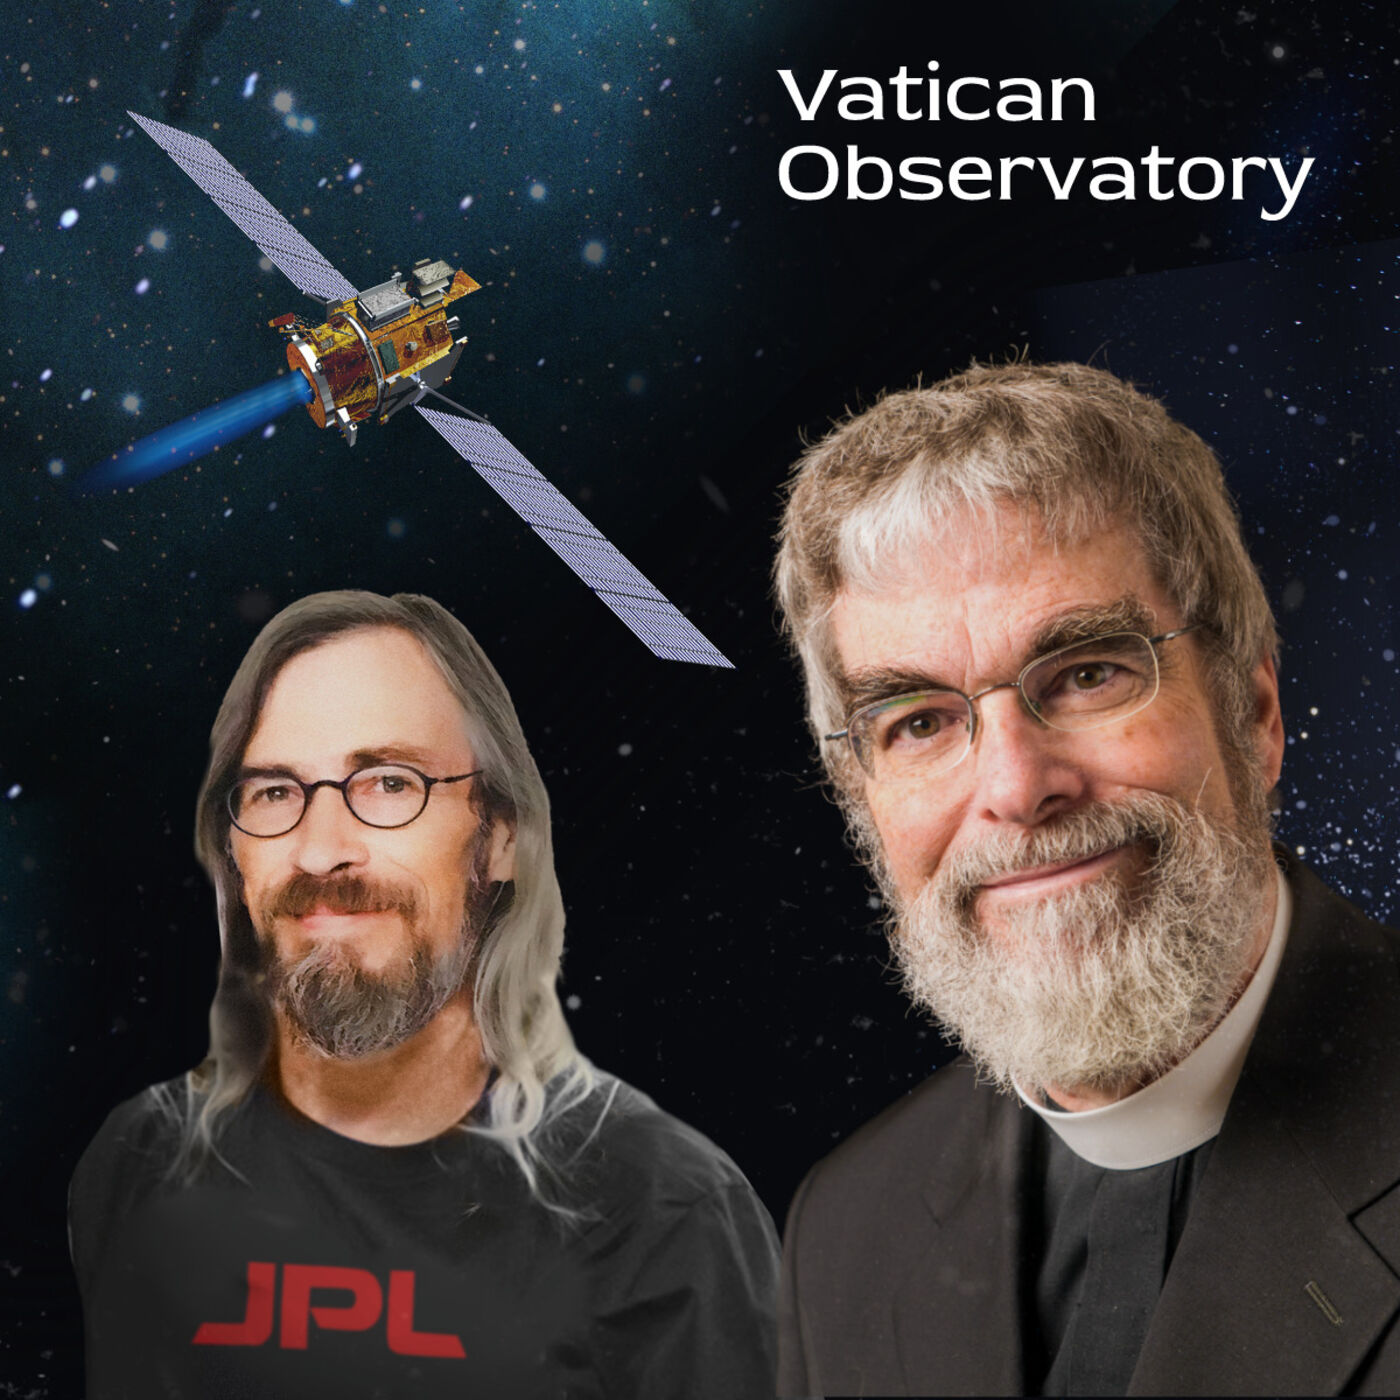 On the Fly – How to drive a spacecraft